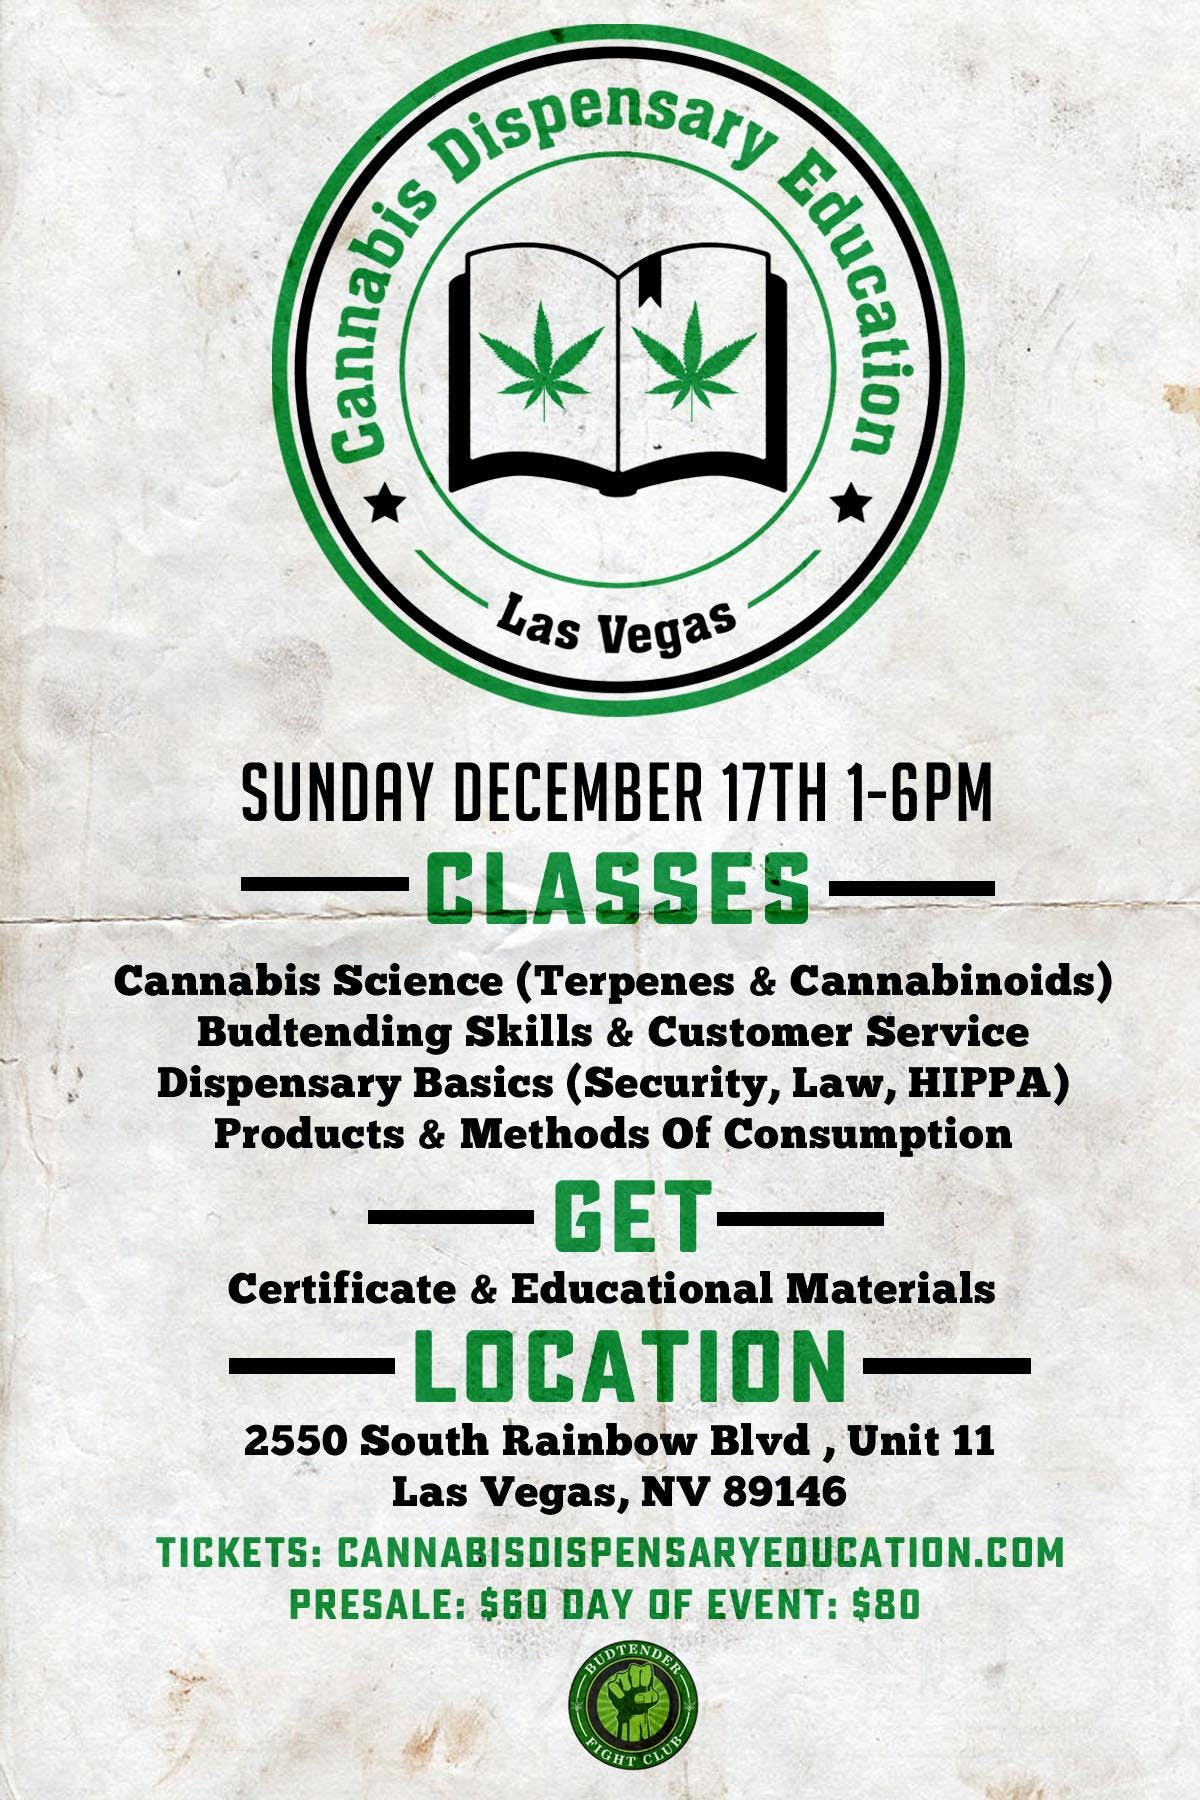 Cannabis Dispensary Education October 28th Las Vegas Get A Retail